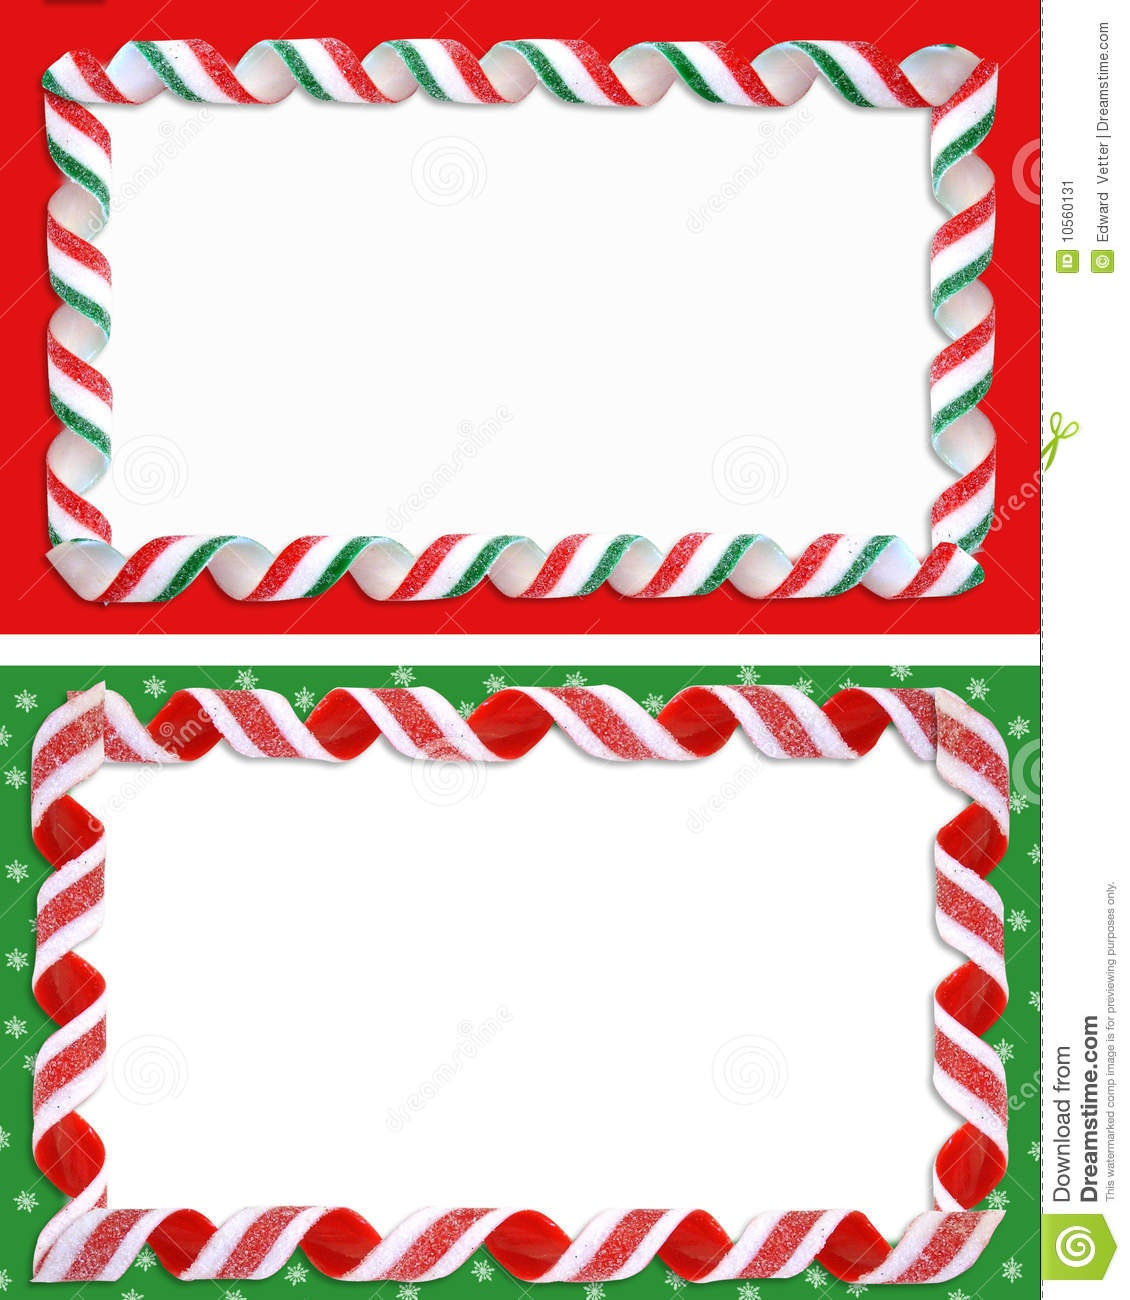 Christmas Borders Free | Free Download Best Christmas Borders Free - Free Printable Christmas Borders